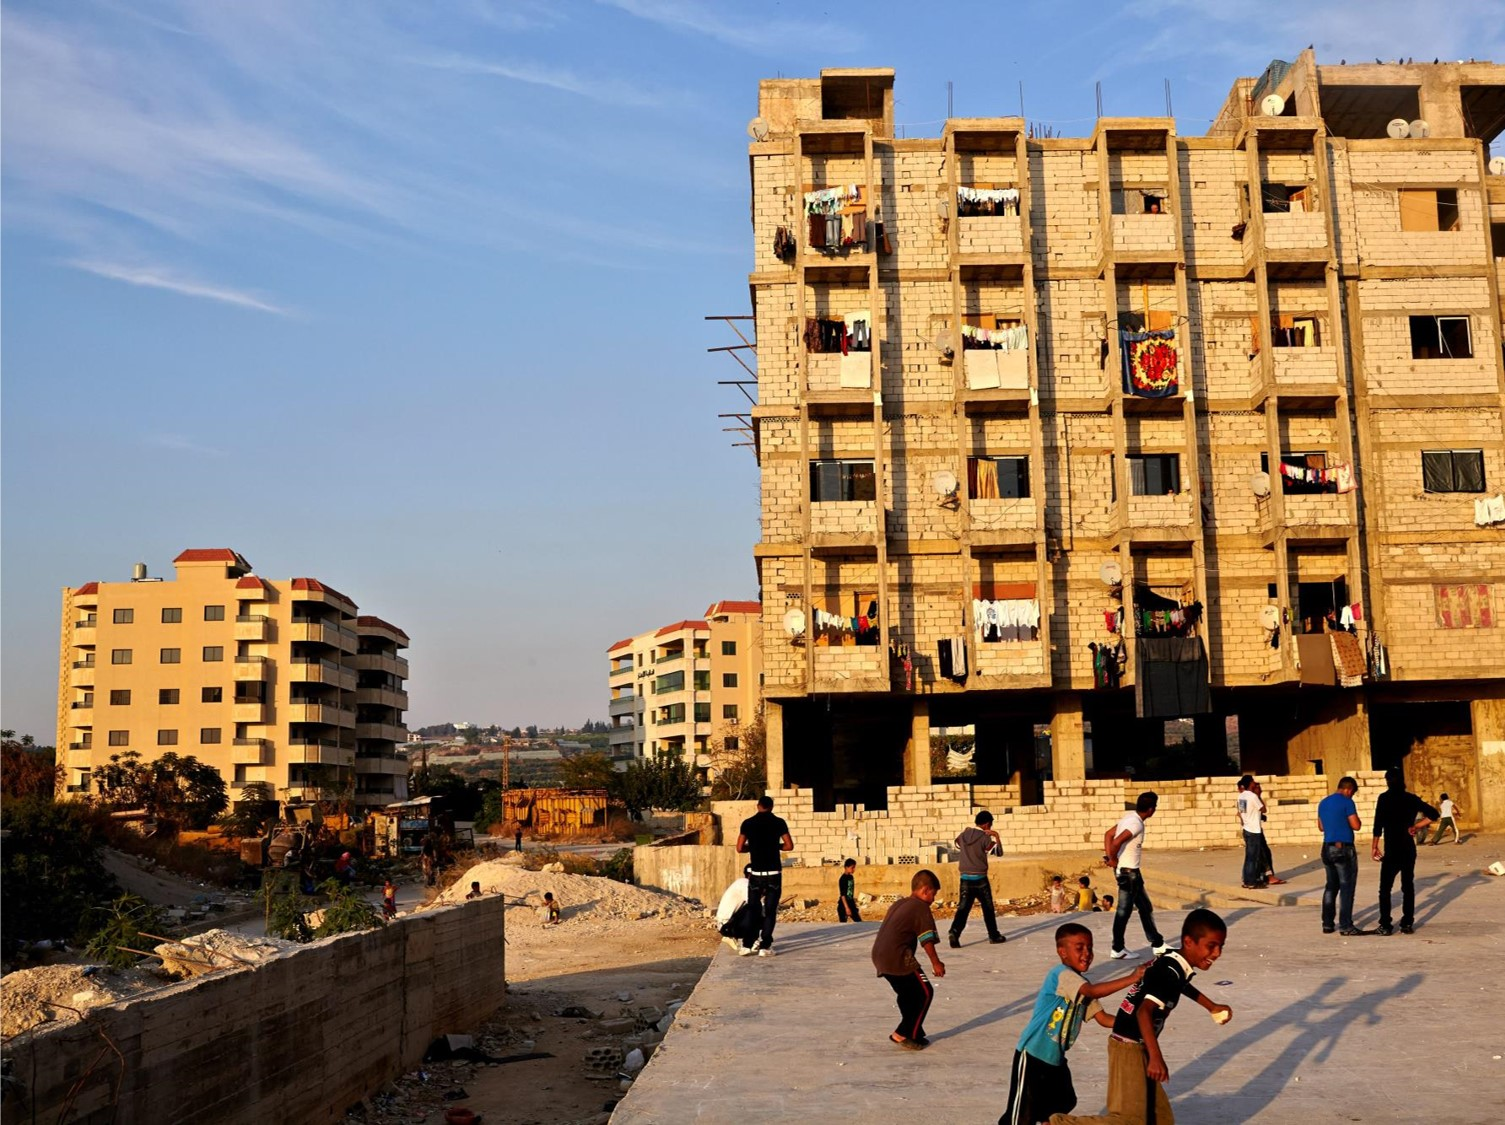 Urban displaced in Syria, occupying unfinished apartments blocks